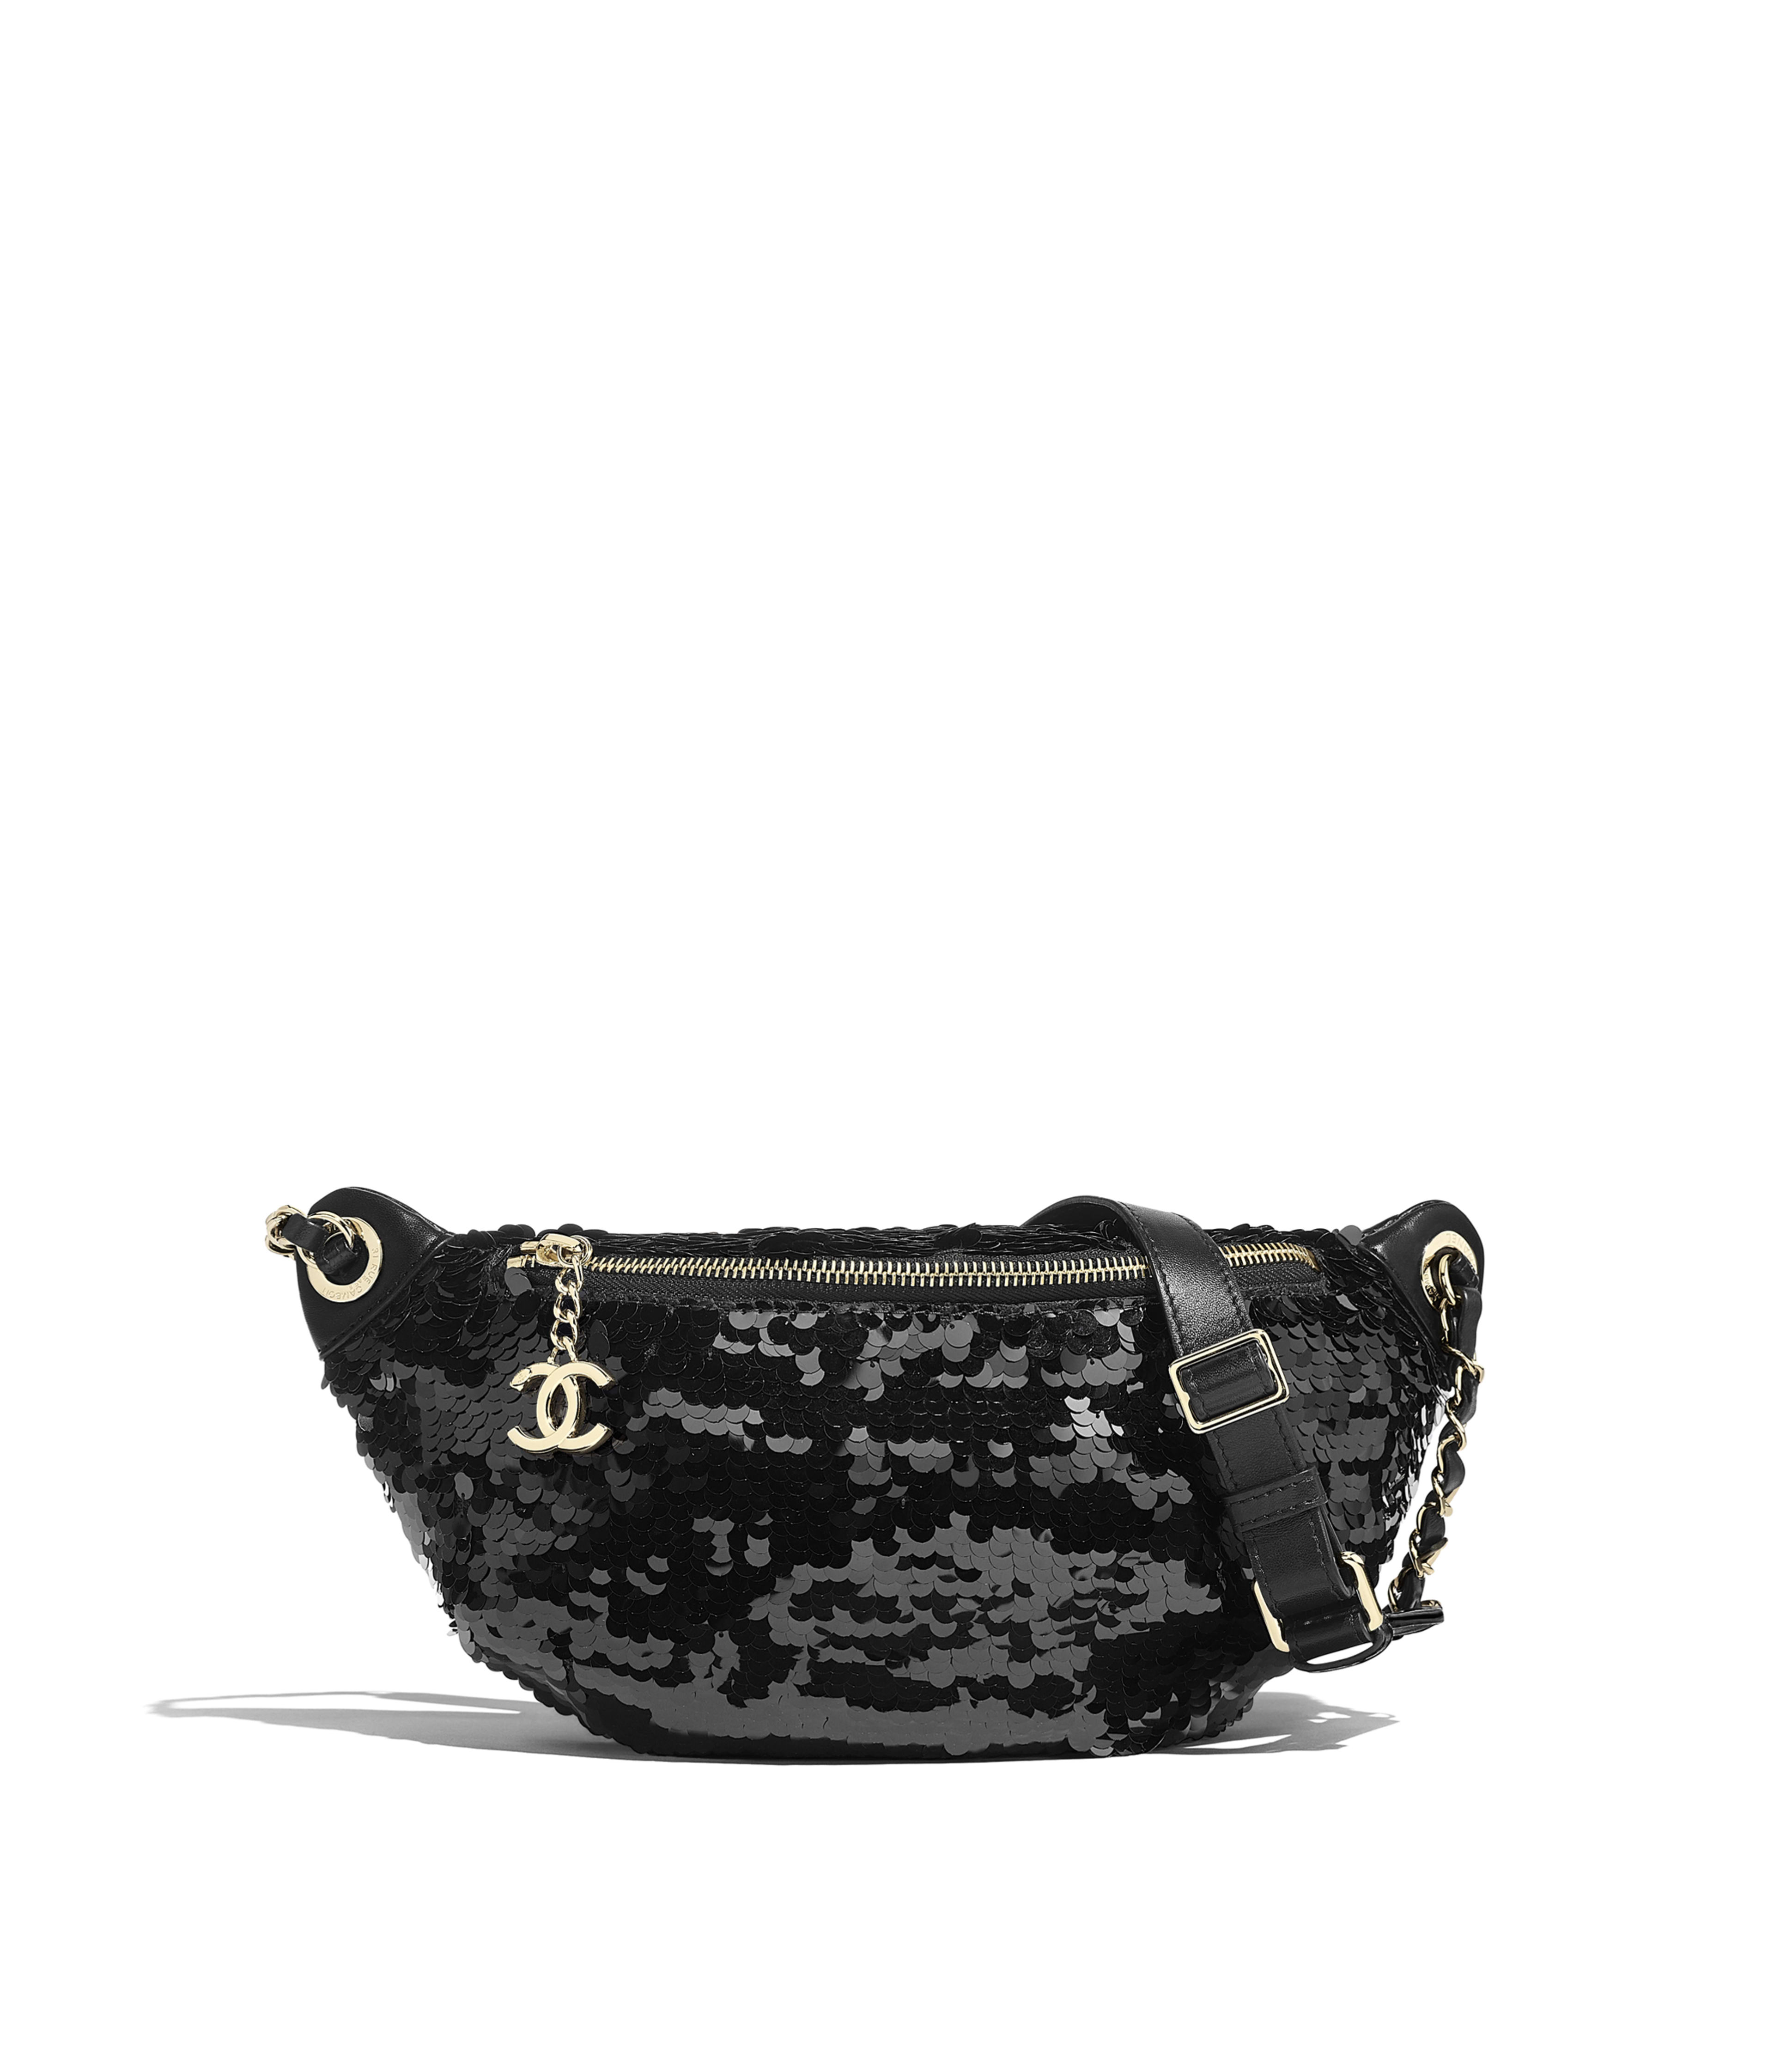 2829427c6767 Waist Bag Sequins, Lambskin & Gold-Tone Metal, Black Ref. AS0363B0018894305